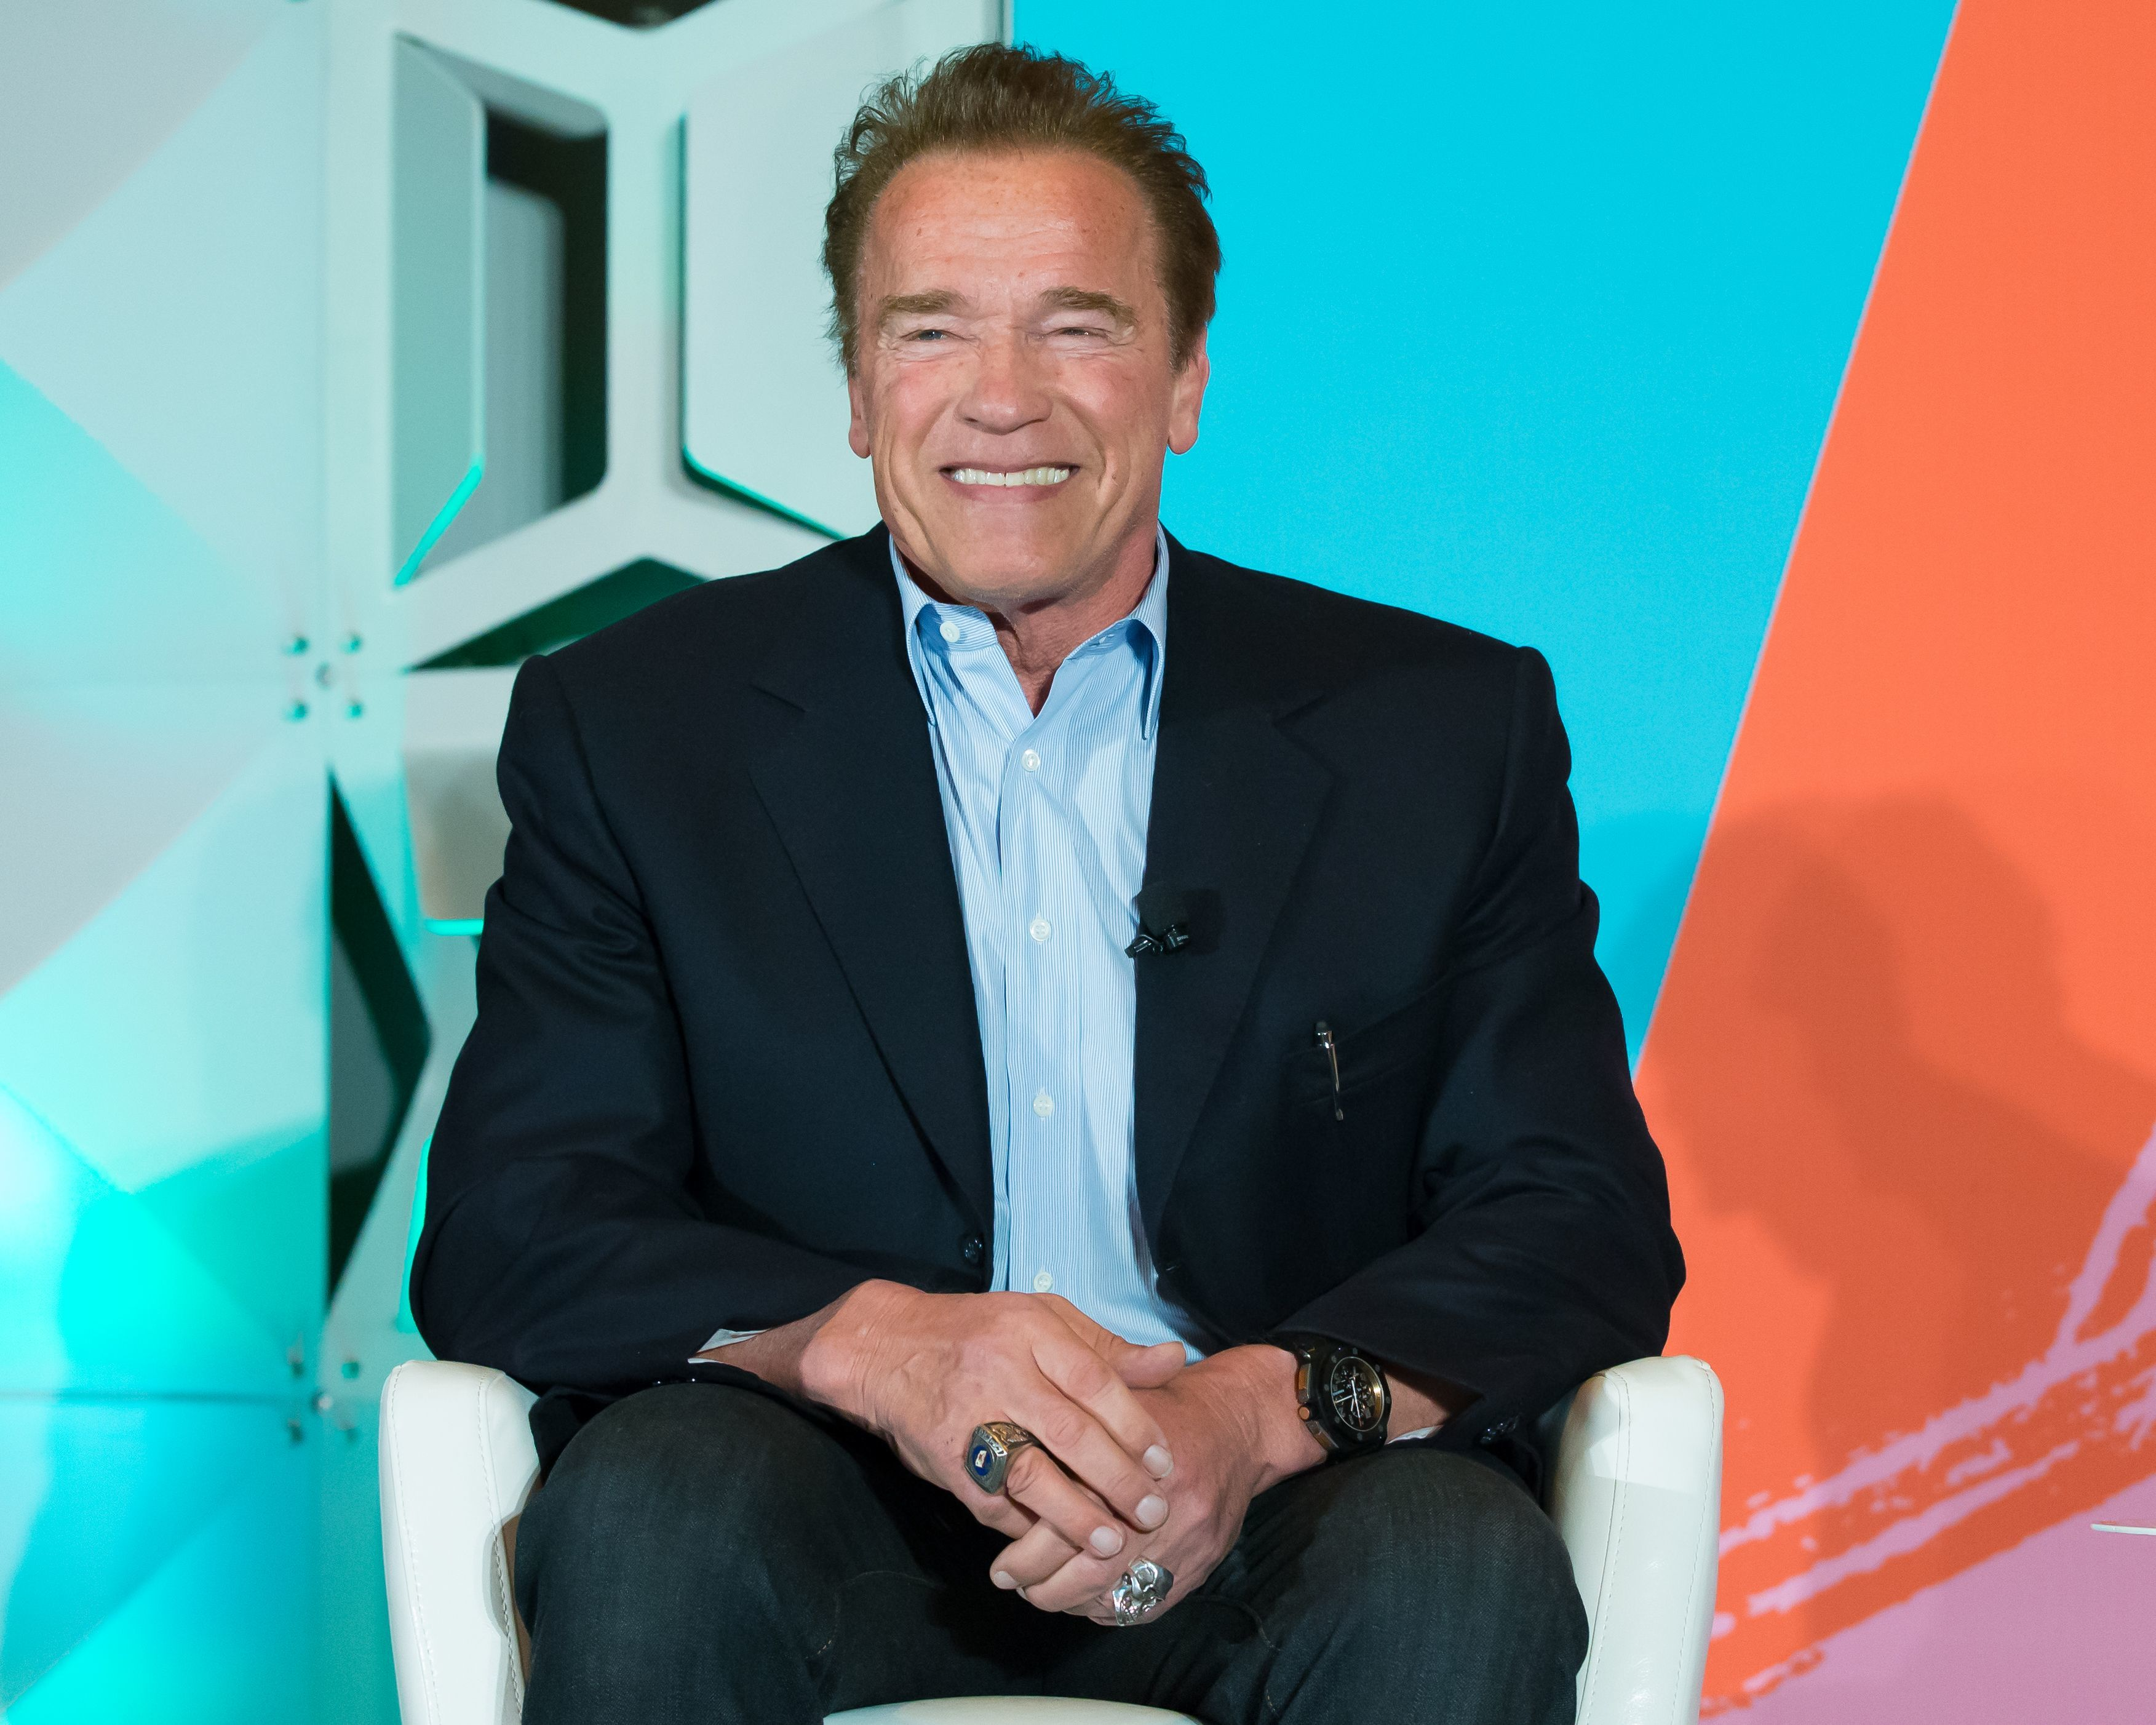 Arnold Schwarzenegger speaks during Politico's Off Message podcast taping during SXSW in Austin, Texas, on March 11, 2018.